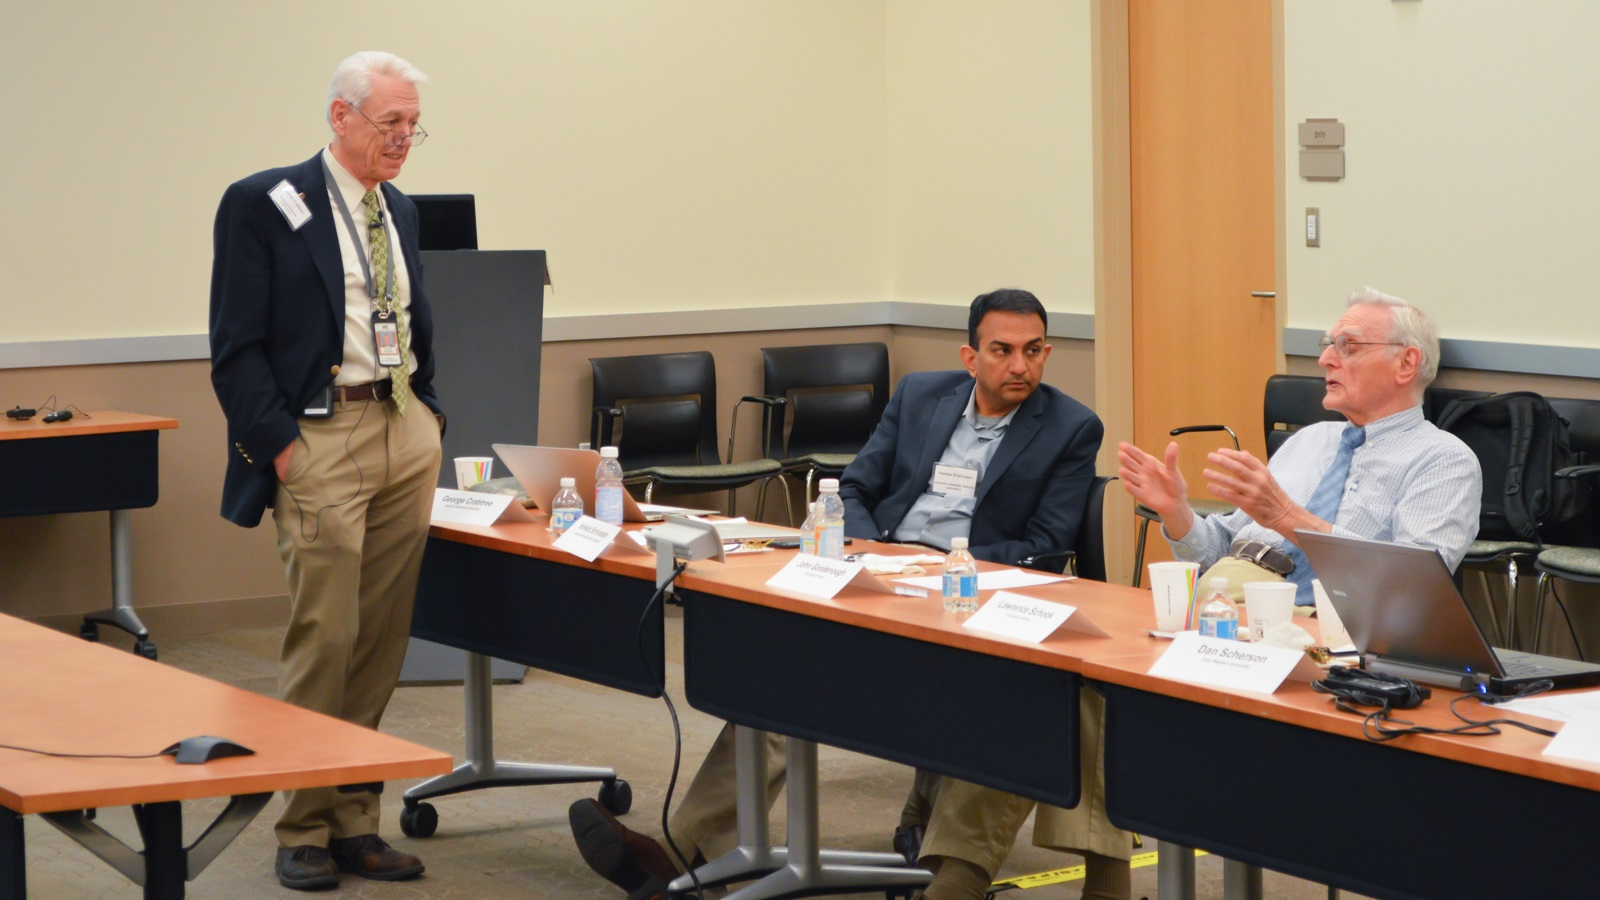 George Crabtree and Venkat Srinivasan chat with 2019 Nobel laureate John Goodenough